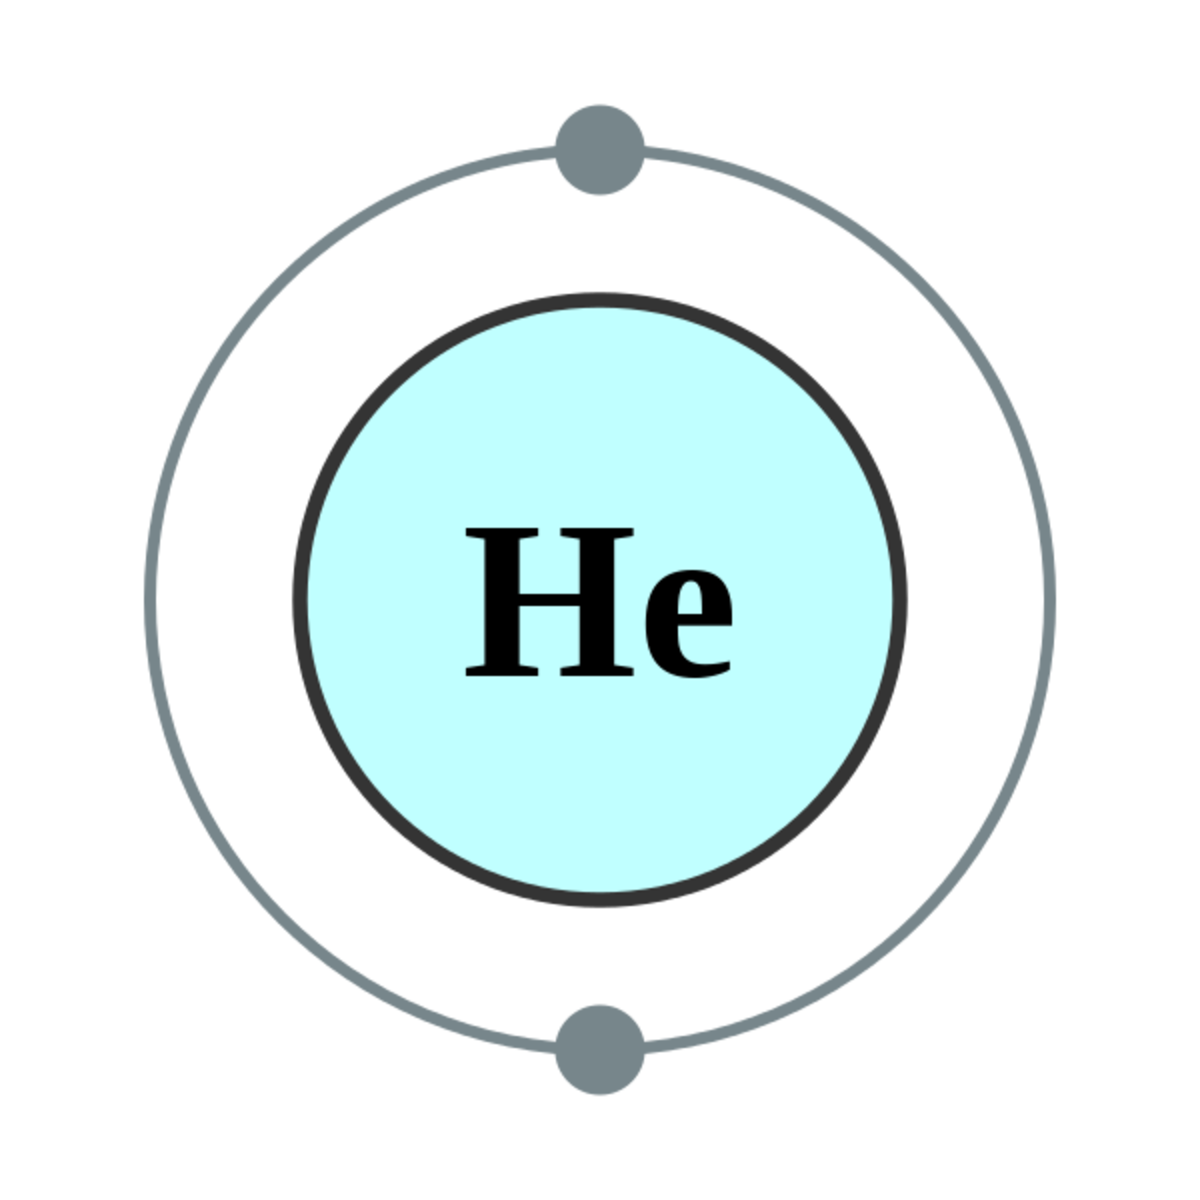 Helium, which is the second most abundant element in the universe, was discovered in 1895.